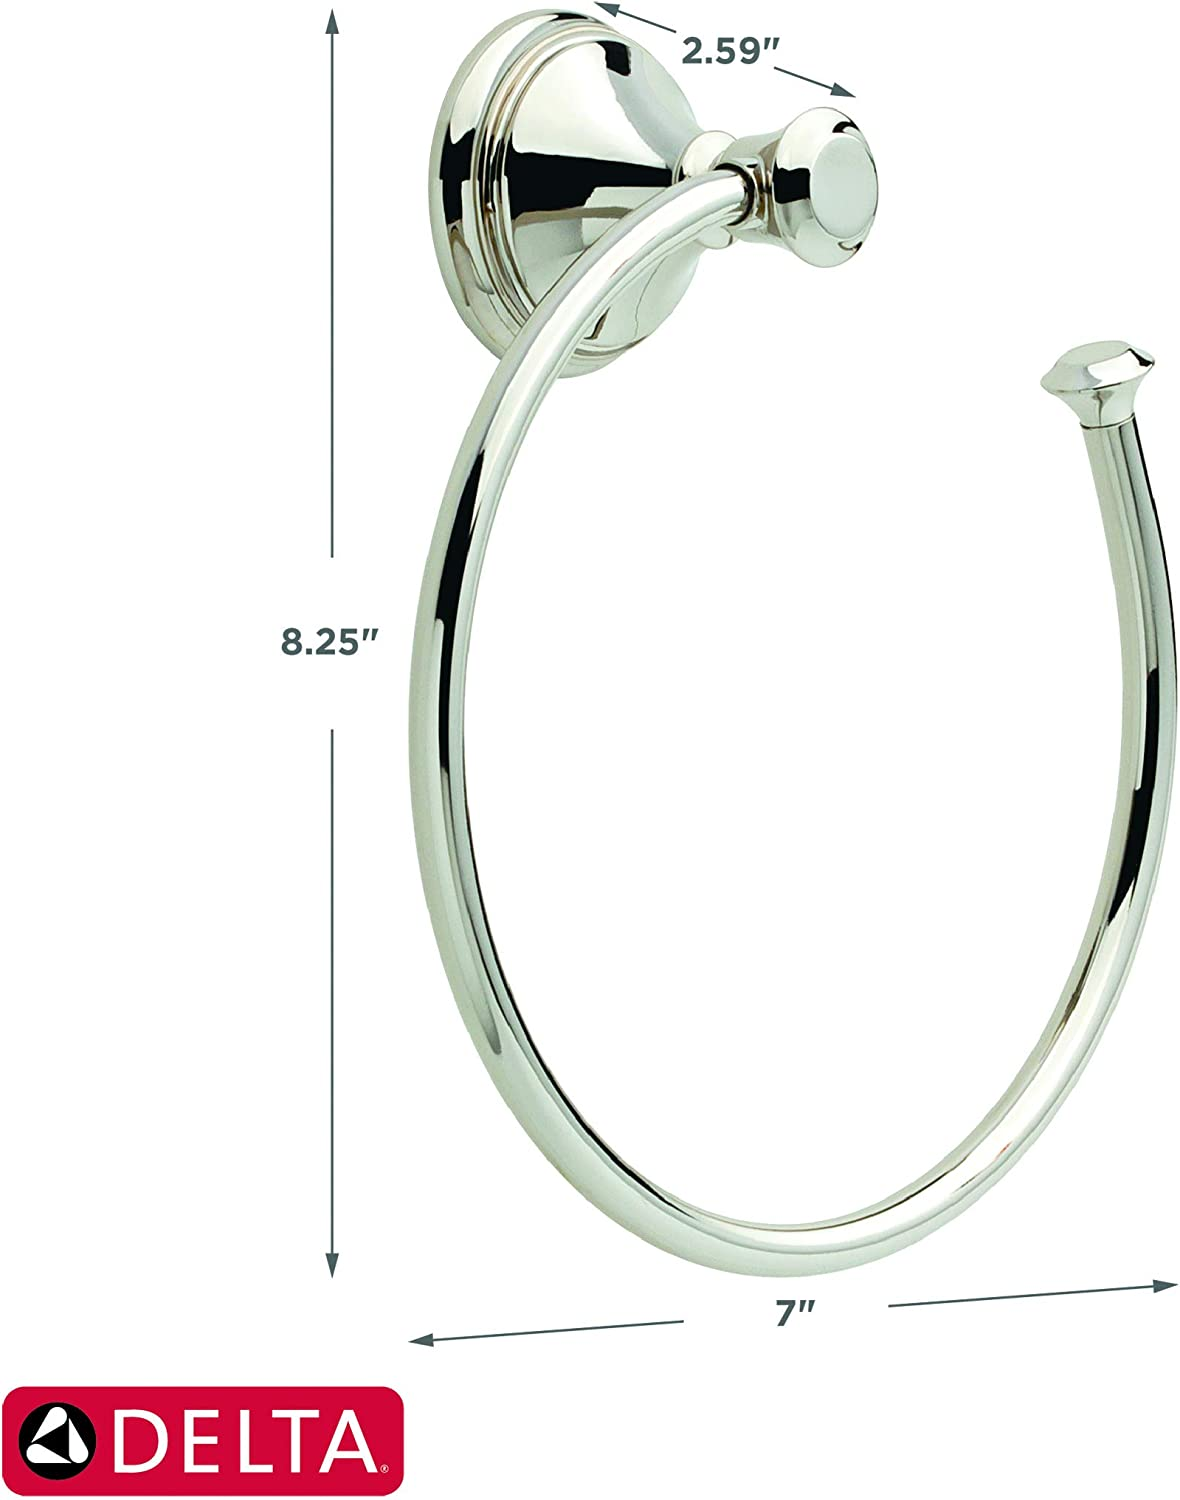 Delta Faucet Bathroom Accessories 79746 Cassidy Hand Towel Ring, Polished Chrome, 2.63 x 7.00 x 2.63 inches - Bathroom Sink Faucets -